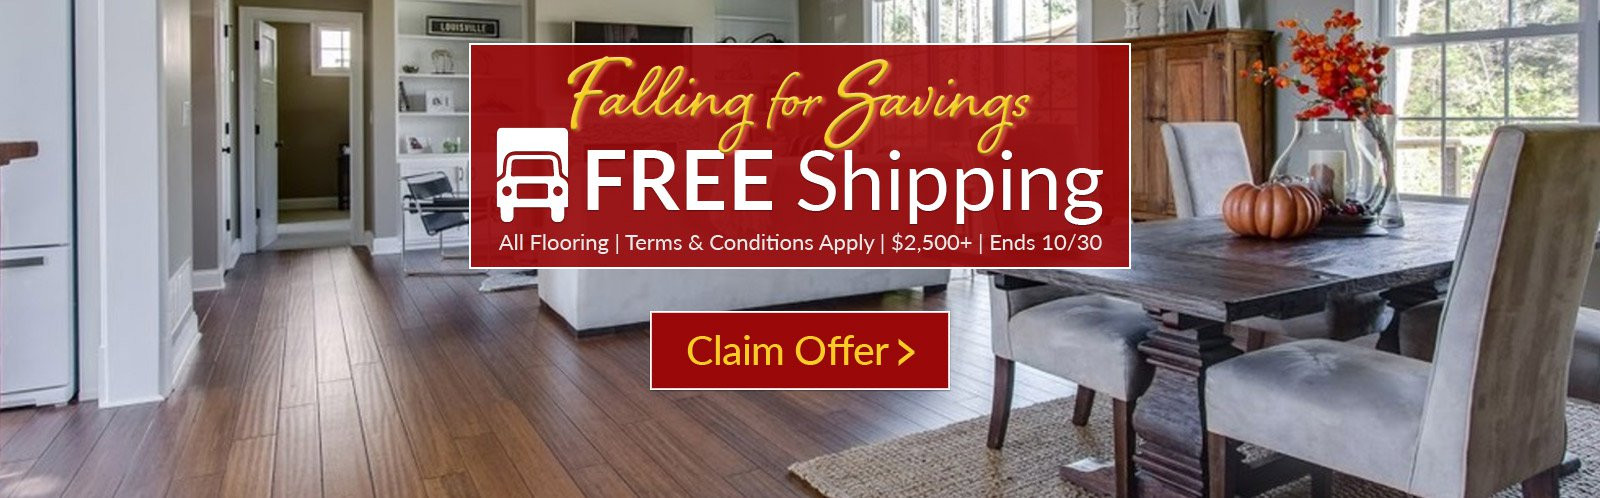 Hardwood Flooring Companies In Los Angeles Of Green Building Construction Materials and Home Decor Cali Bamboo Throughout Your Shopping Cart is Empty